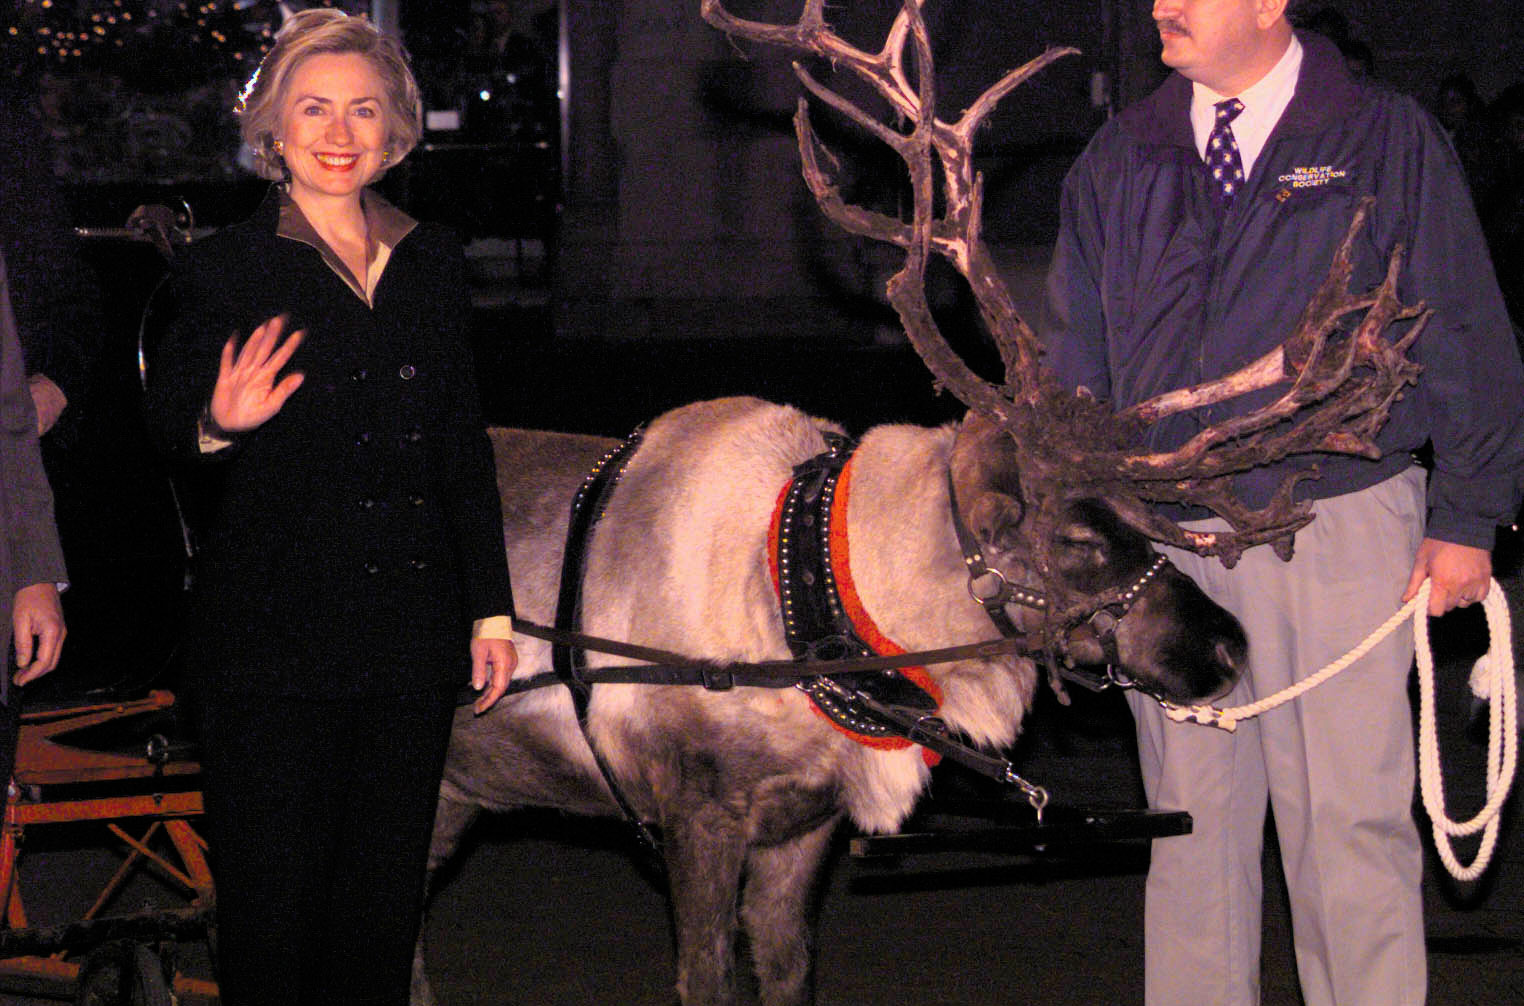 10. Hillary Clinton Visits the Bronx Zoo